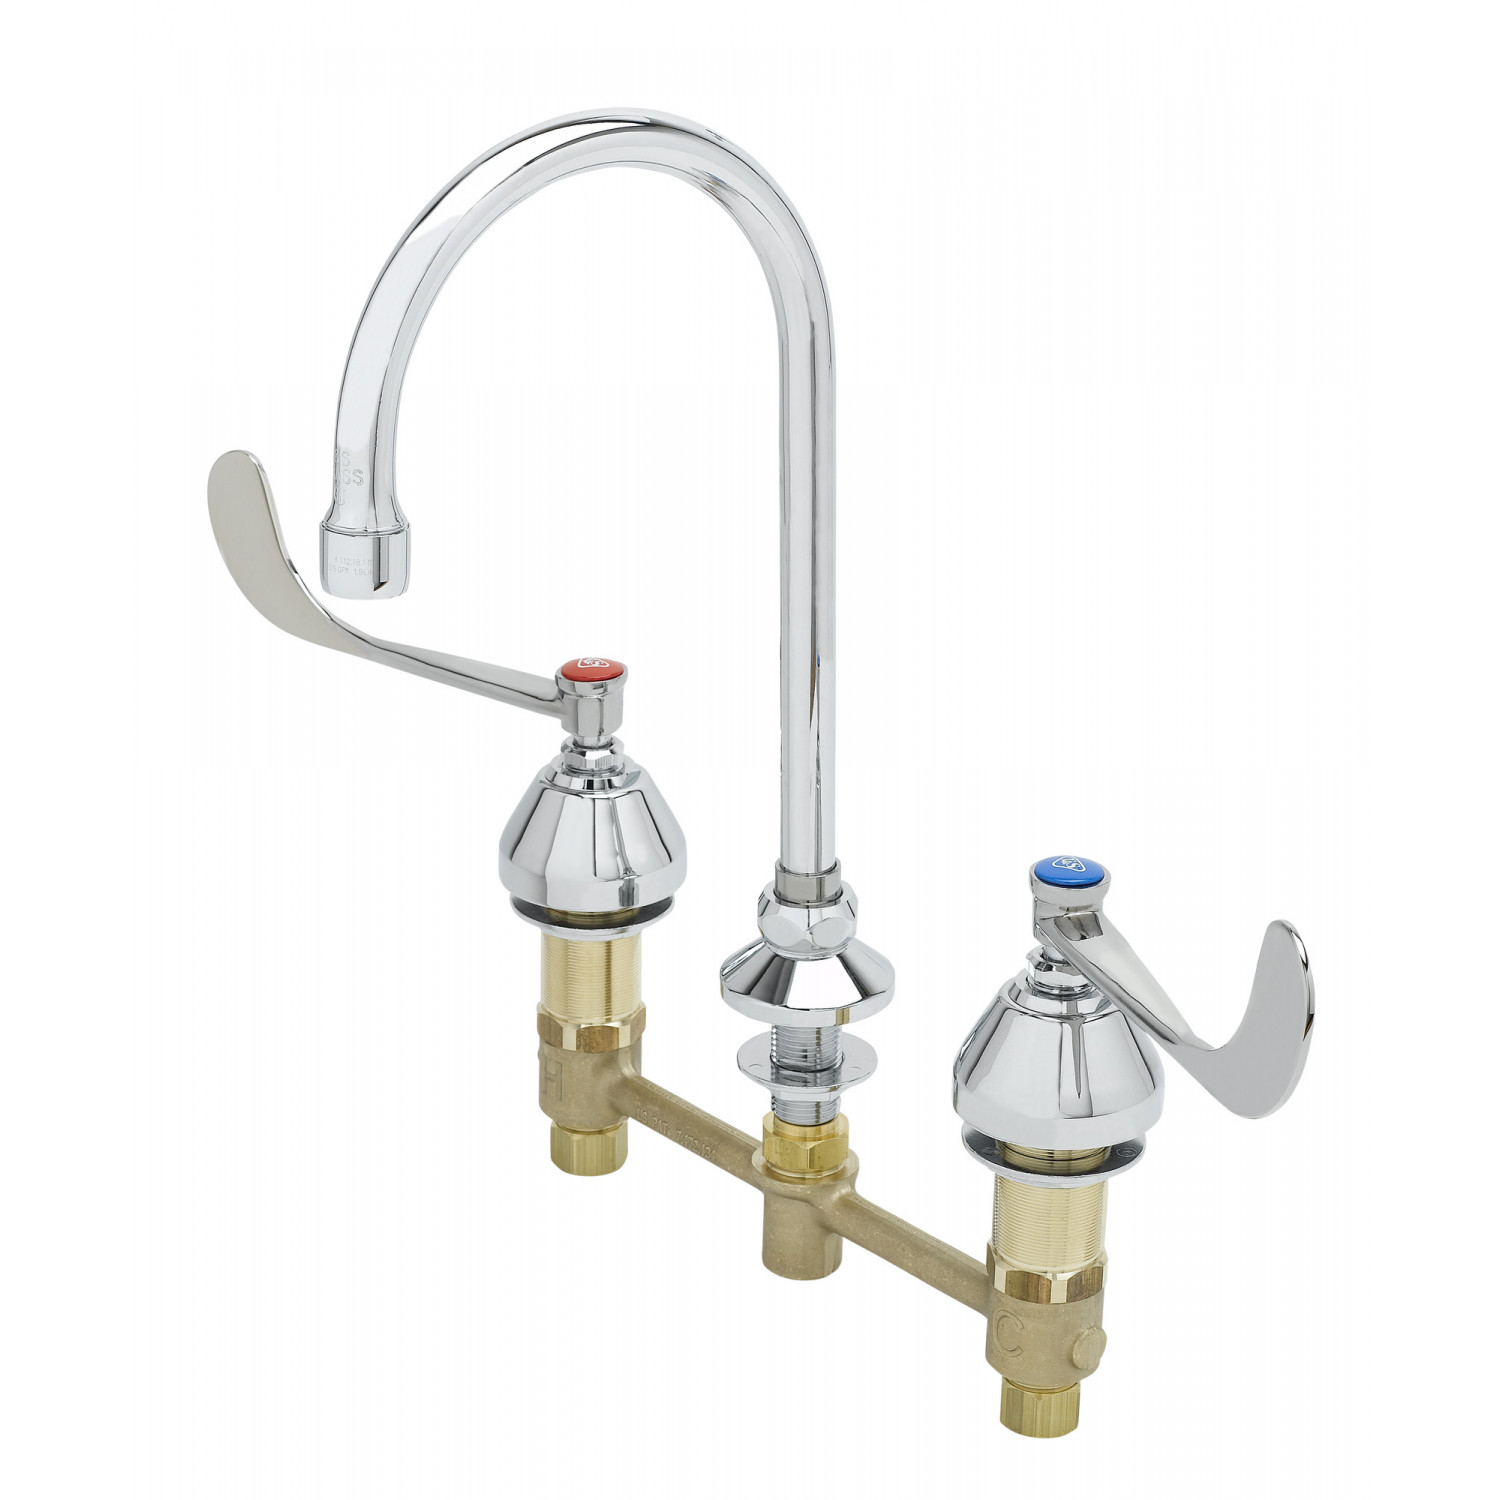 Medical & Lavatory Faucets: B-2866-F05 - T&S Brass